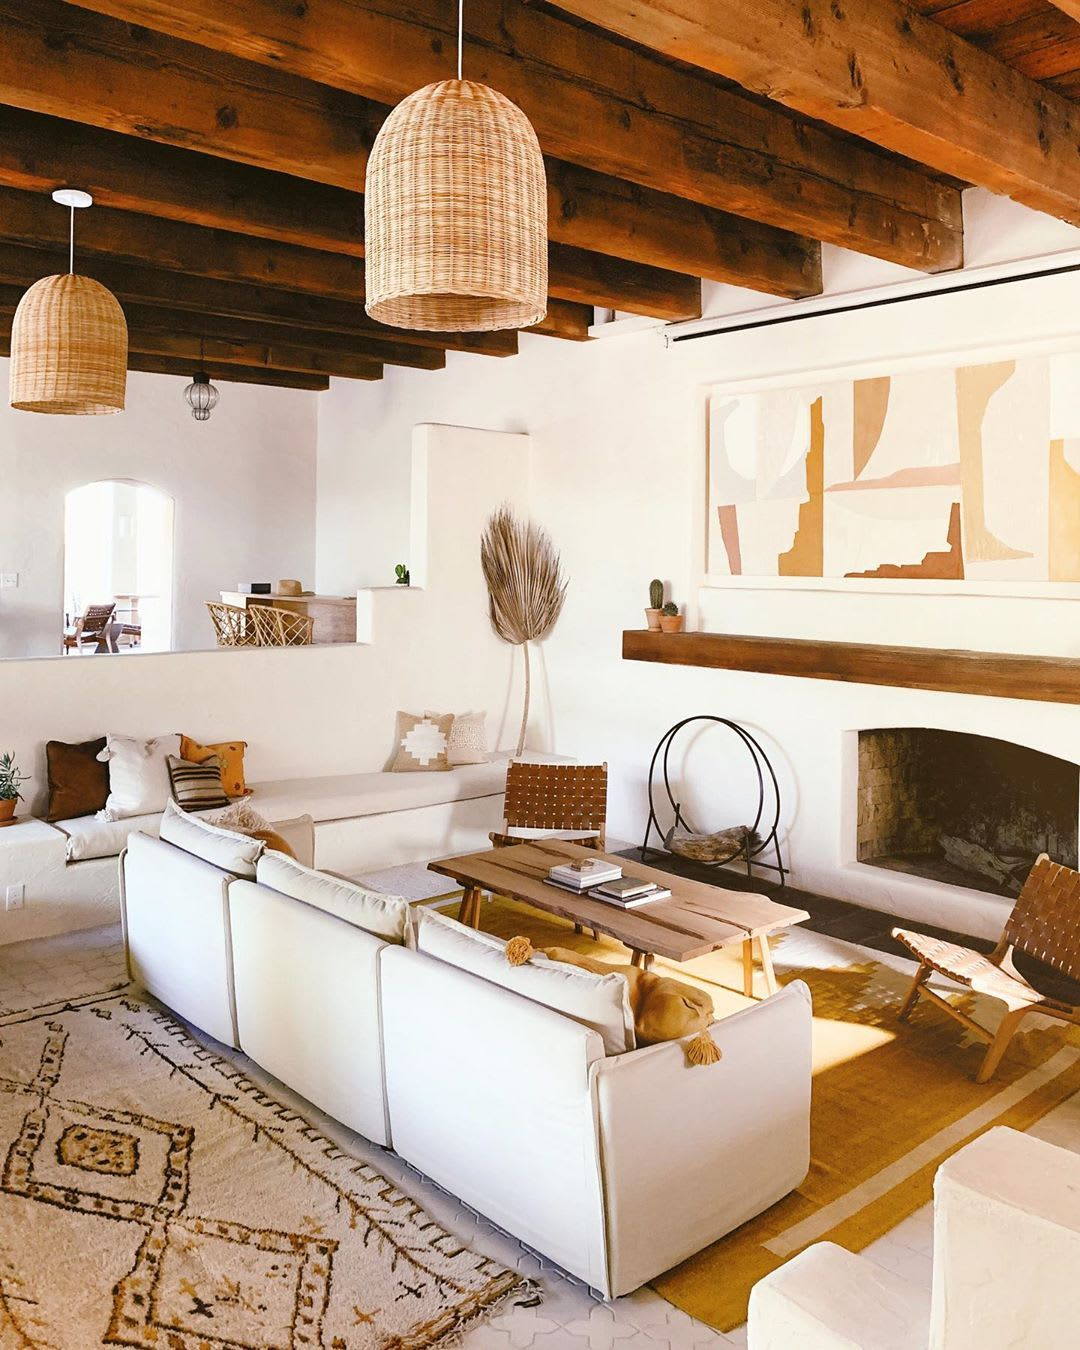 The Best Things To Do In Tucson According To A Local Home Joshua Tree House House Design